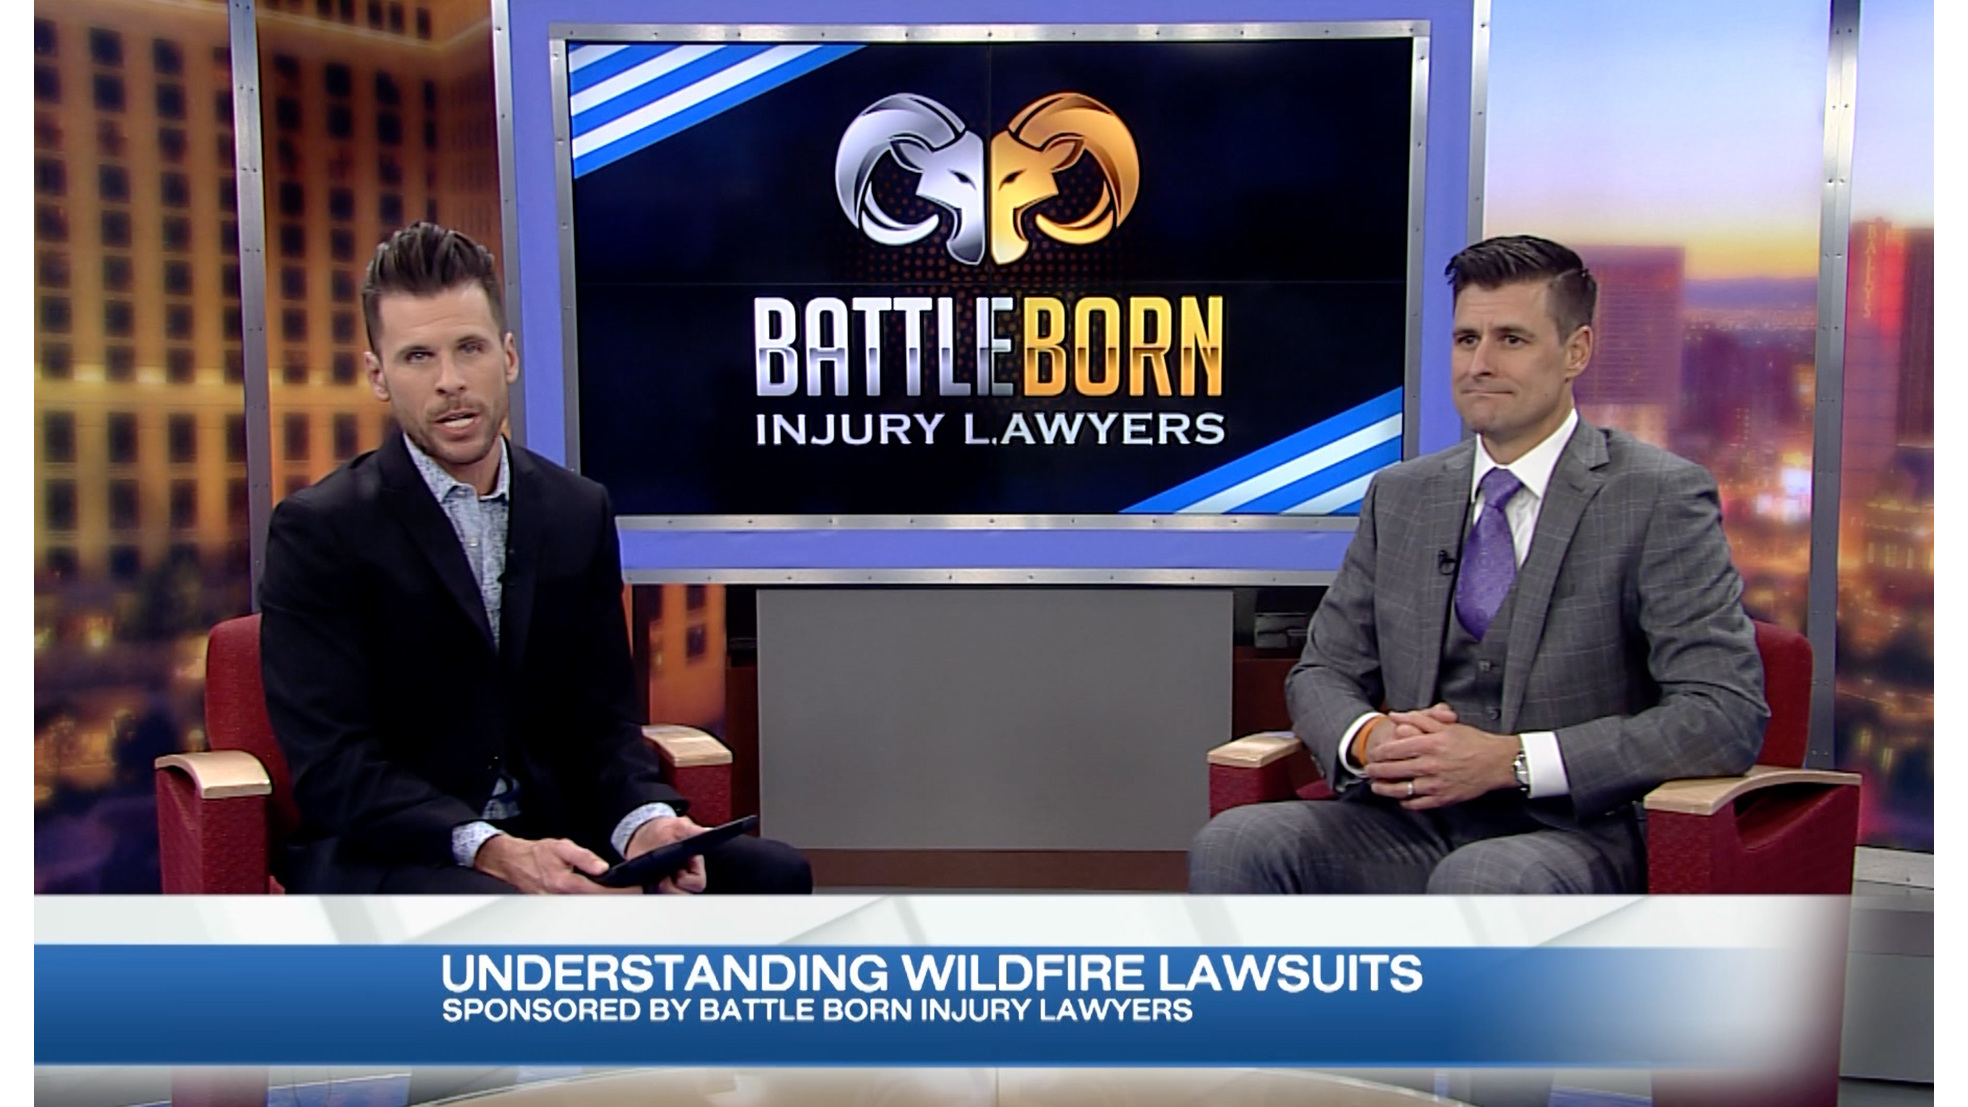 Battle Born Lawyers discuss the wildfire lawsuits